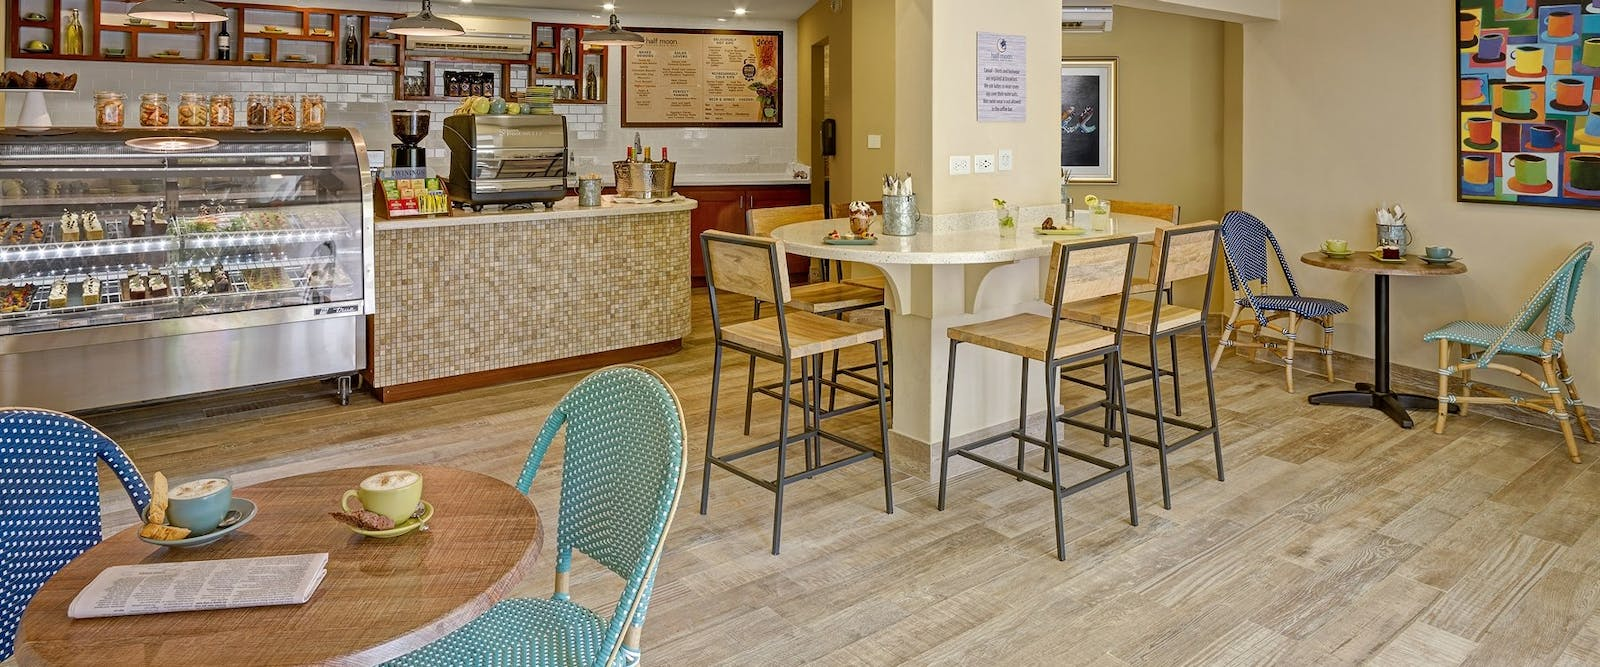 Half Moon Coffee Shop and Deli at Turtle Beach Resort by Elegant Hotels, Barbados